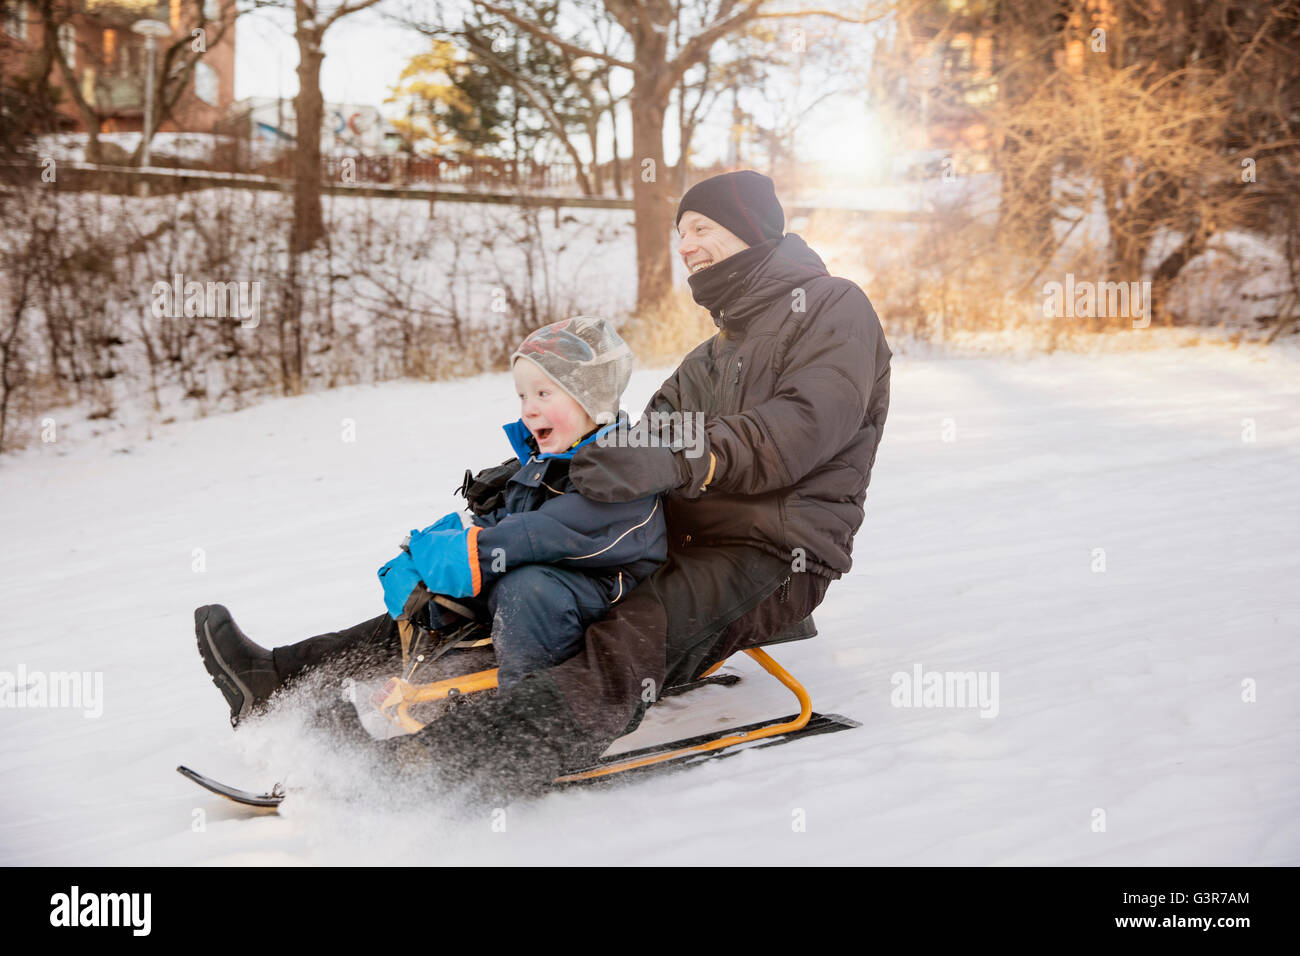 Sweden, Sodermanland, Johanneshov, Father with son (4-5) tobogganing - Stock Image